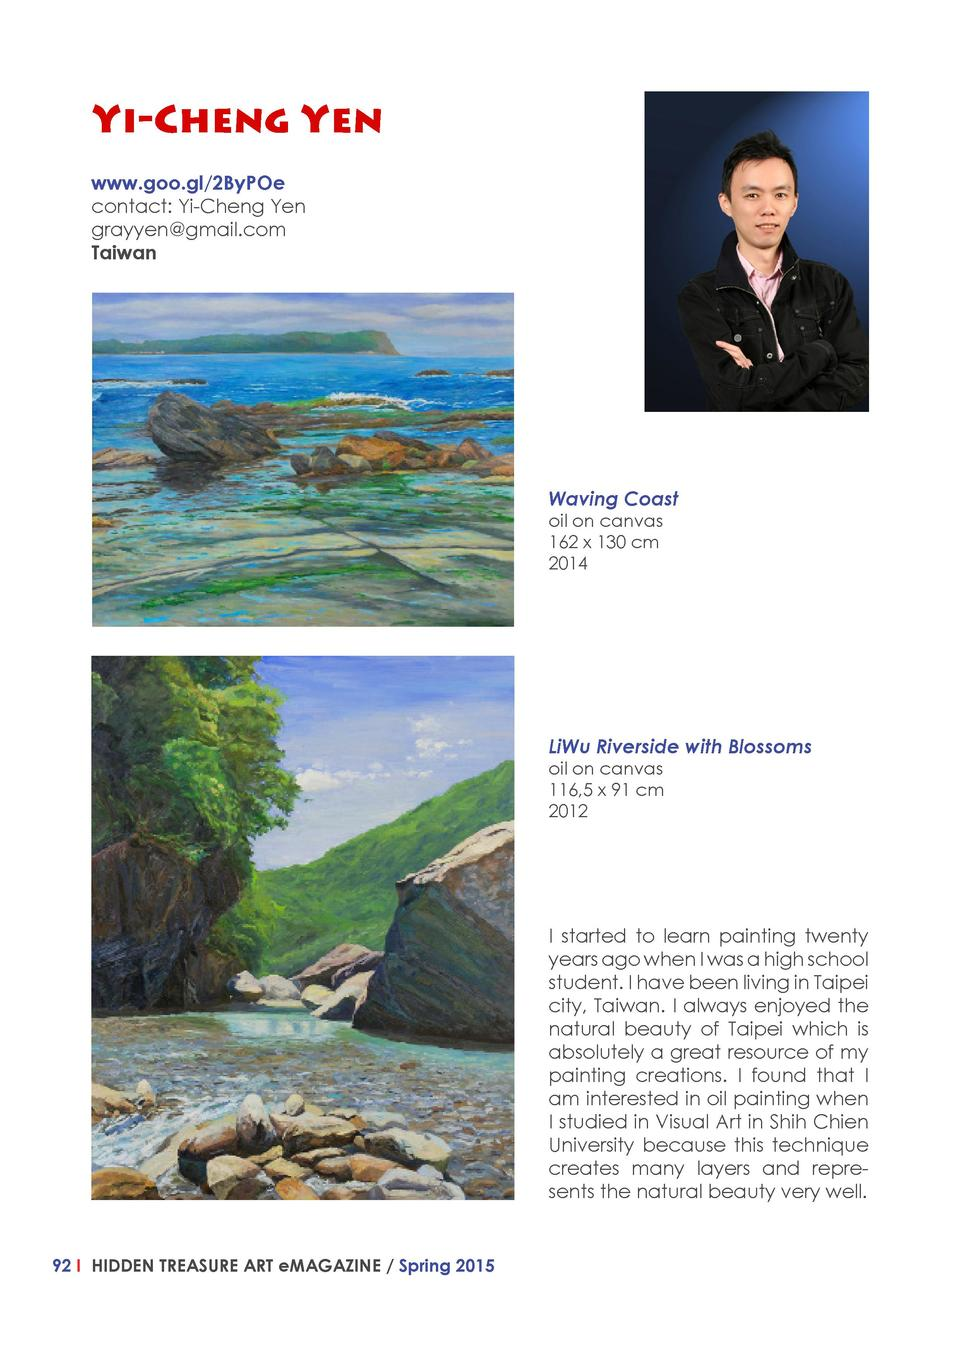 Yi-Cheng Yen www.goo.gl 2ByPOe contact  Yi-Cheng Yen grayyen gmail.com Taiwan  Waving Coast oil on canvas 162 x 130 cm 201...